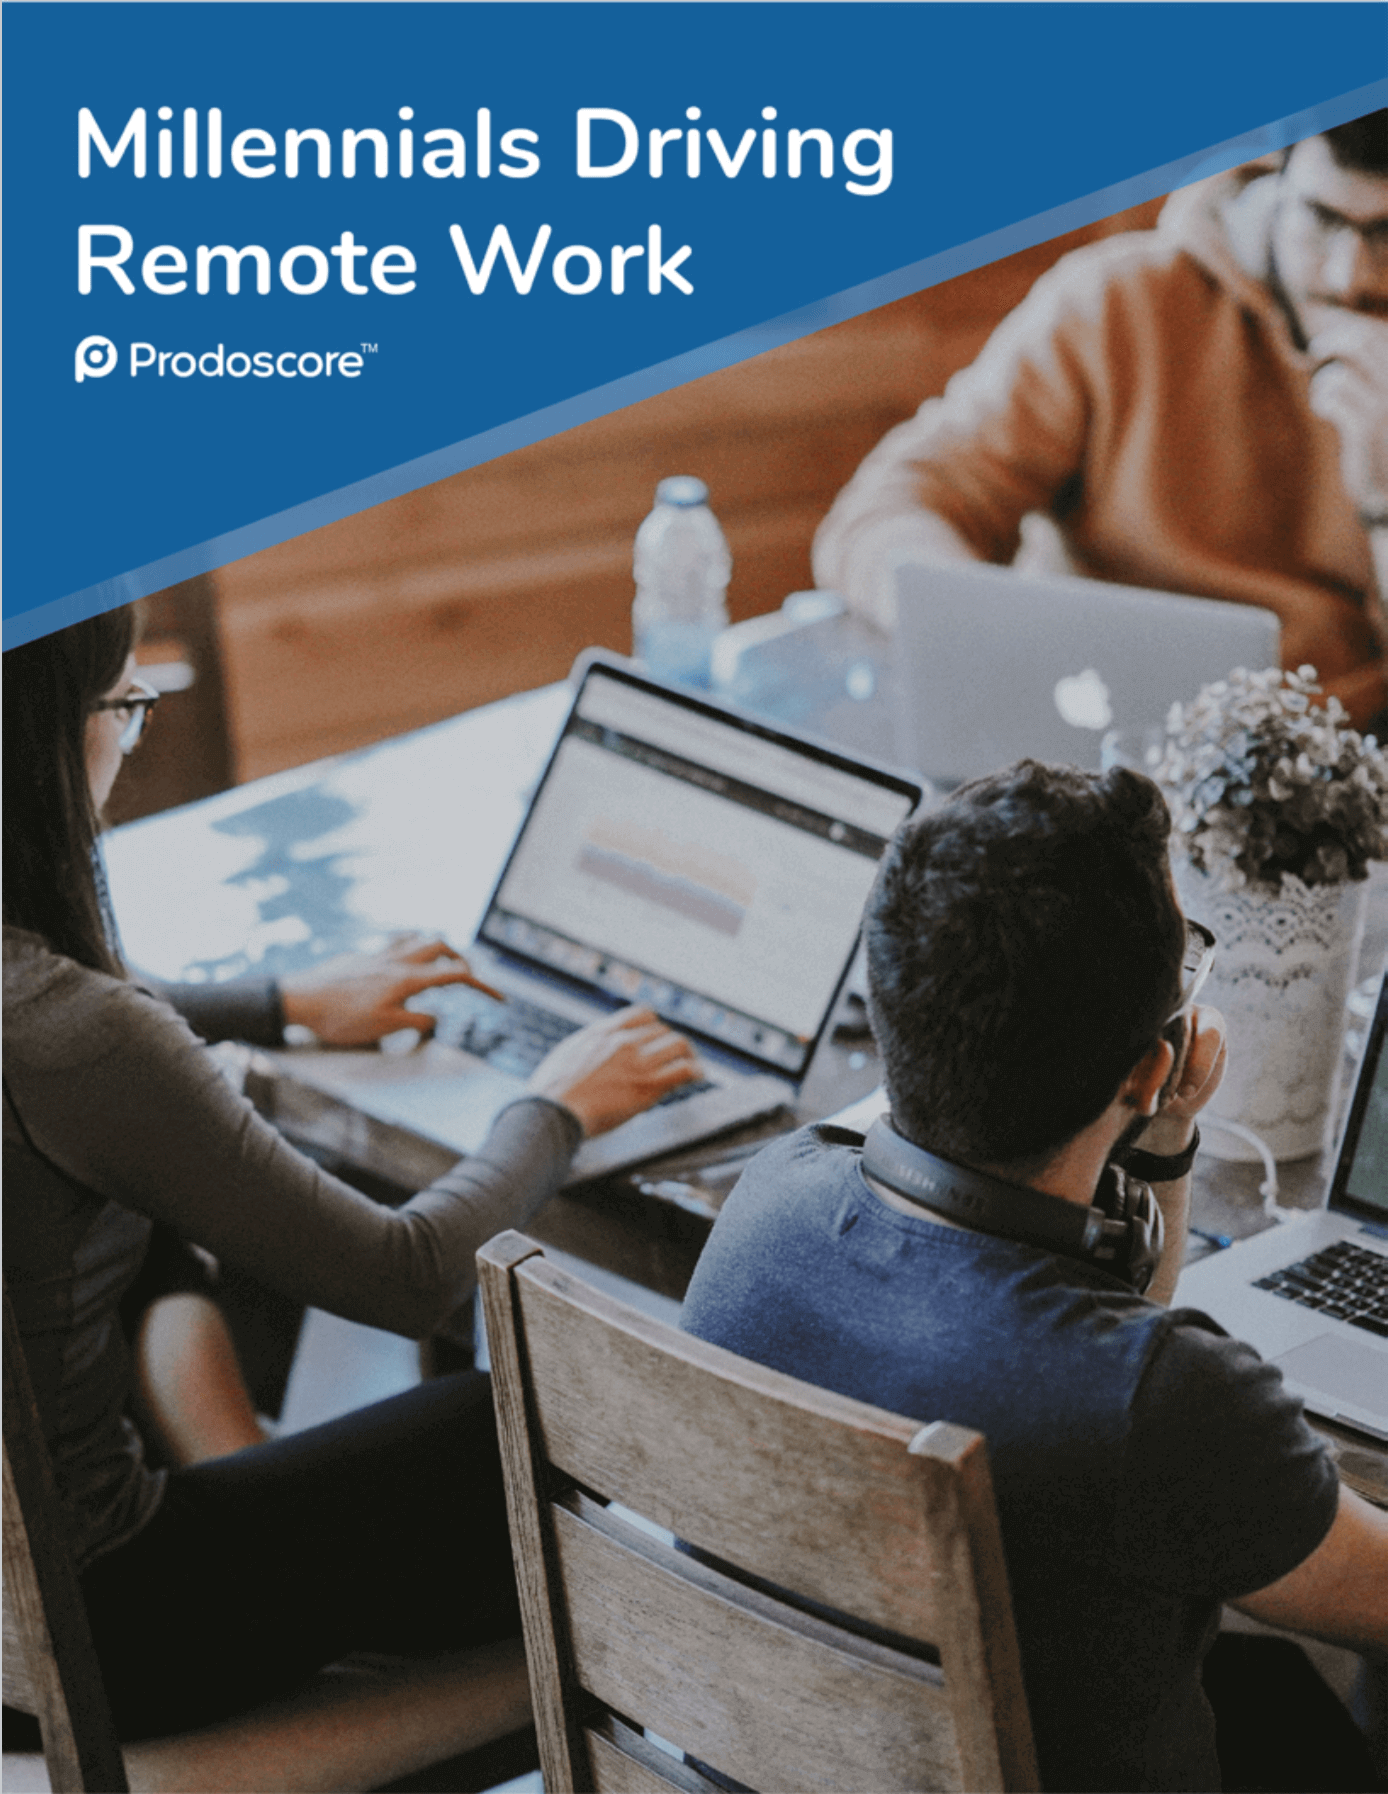 Millennials Driving Remote Work